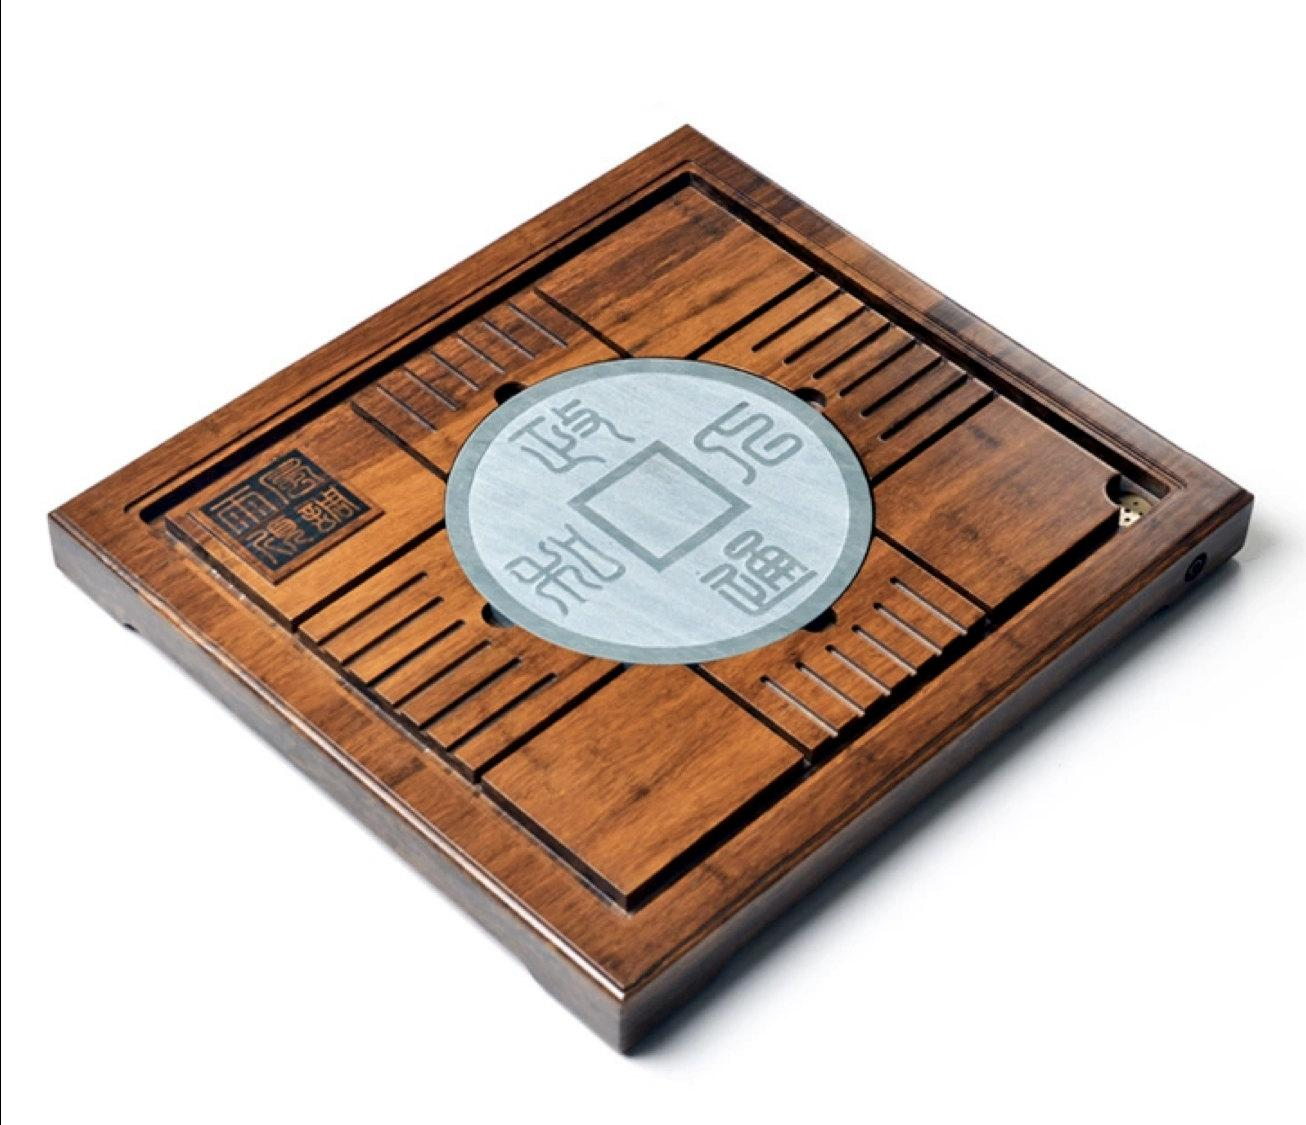 Weight Bamboo And Black Stone Tea Tray Displaying And Serveing Tea Tea Tray Handicraft Chinese Congou Tea Setchinese Teaism Practice.